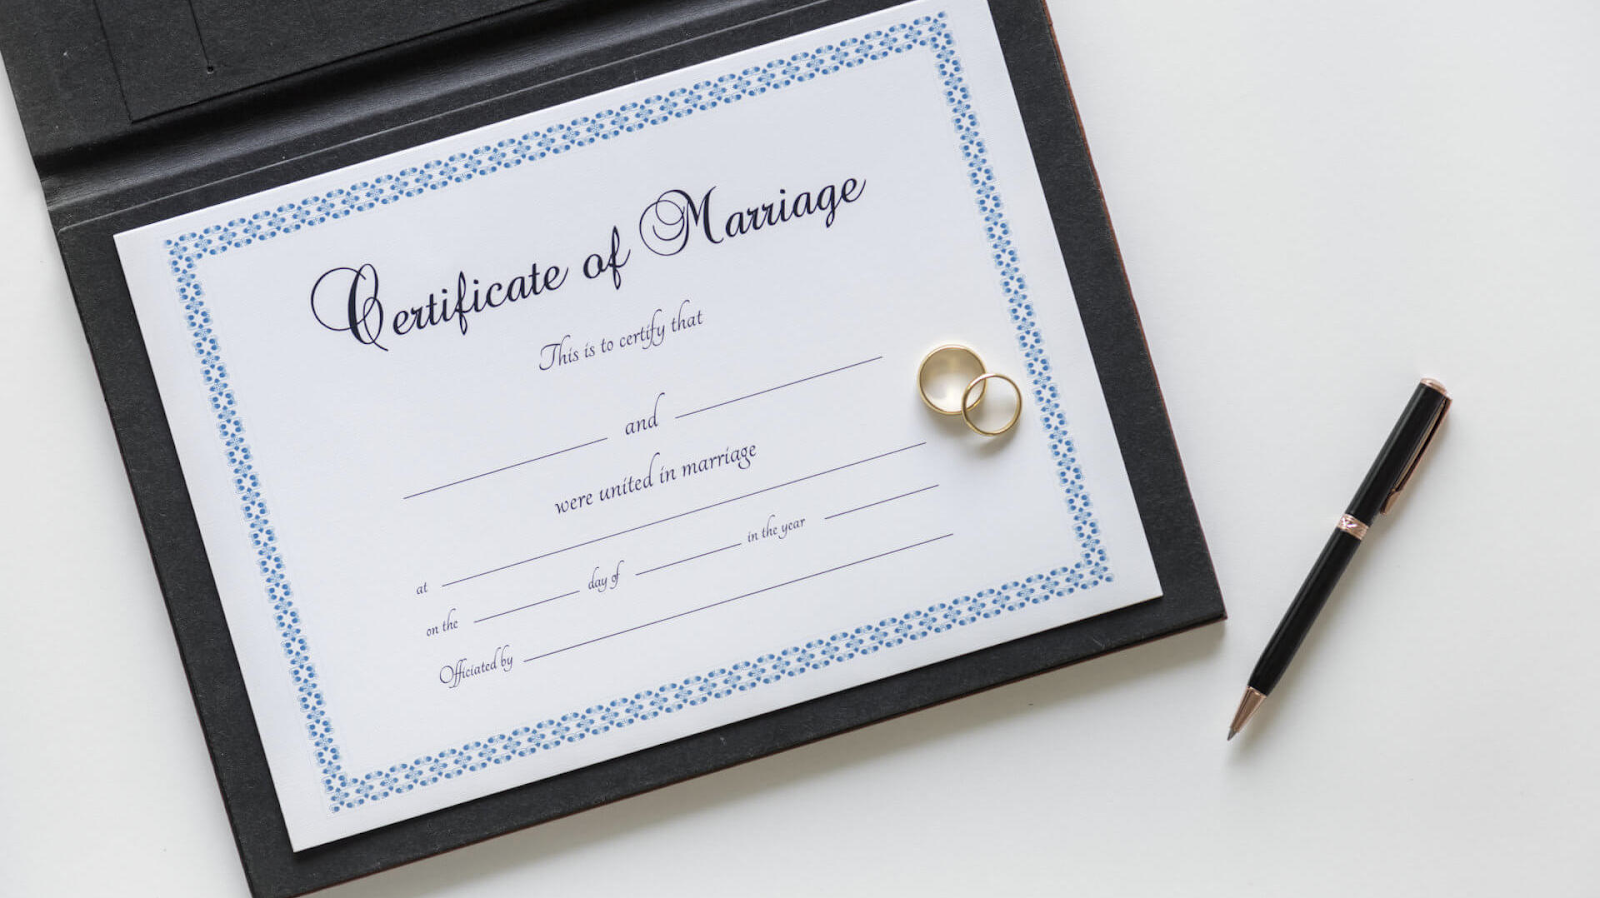 Marriage certificate, two rings and a pen on white table